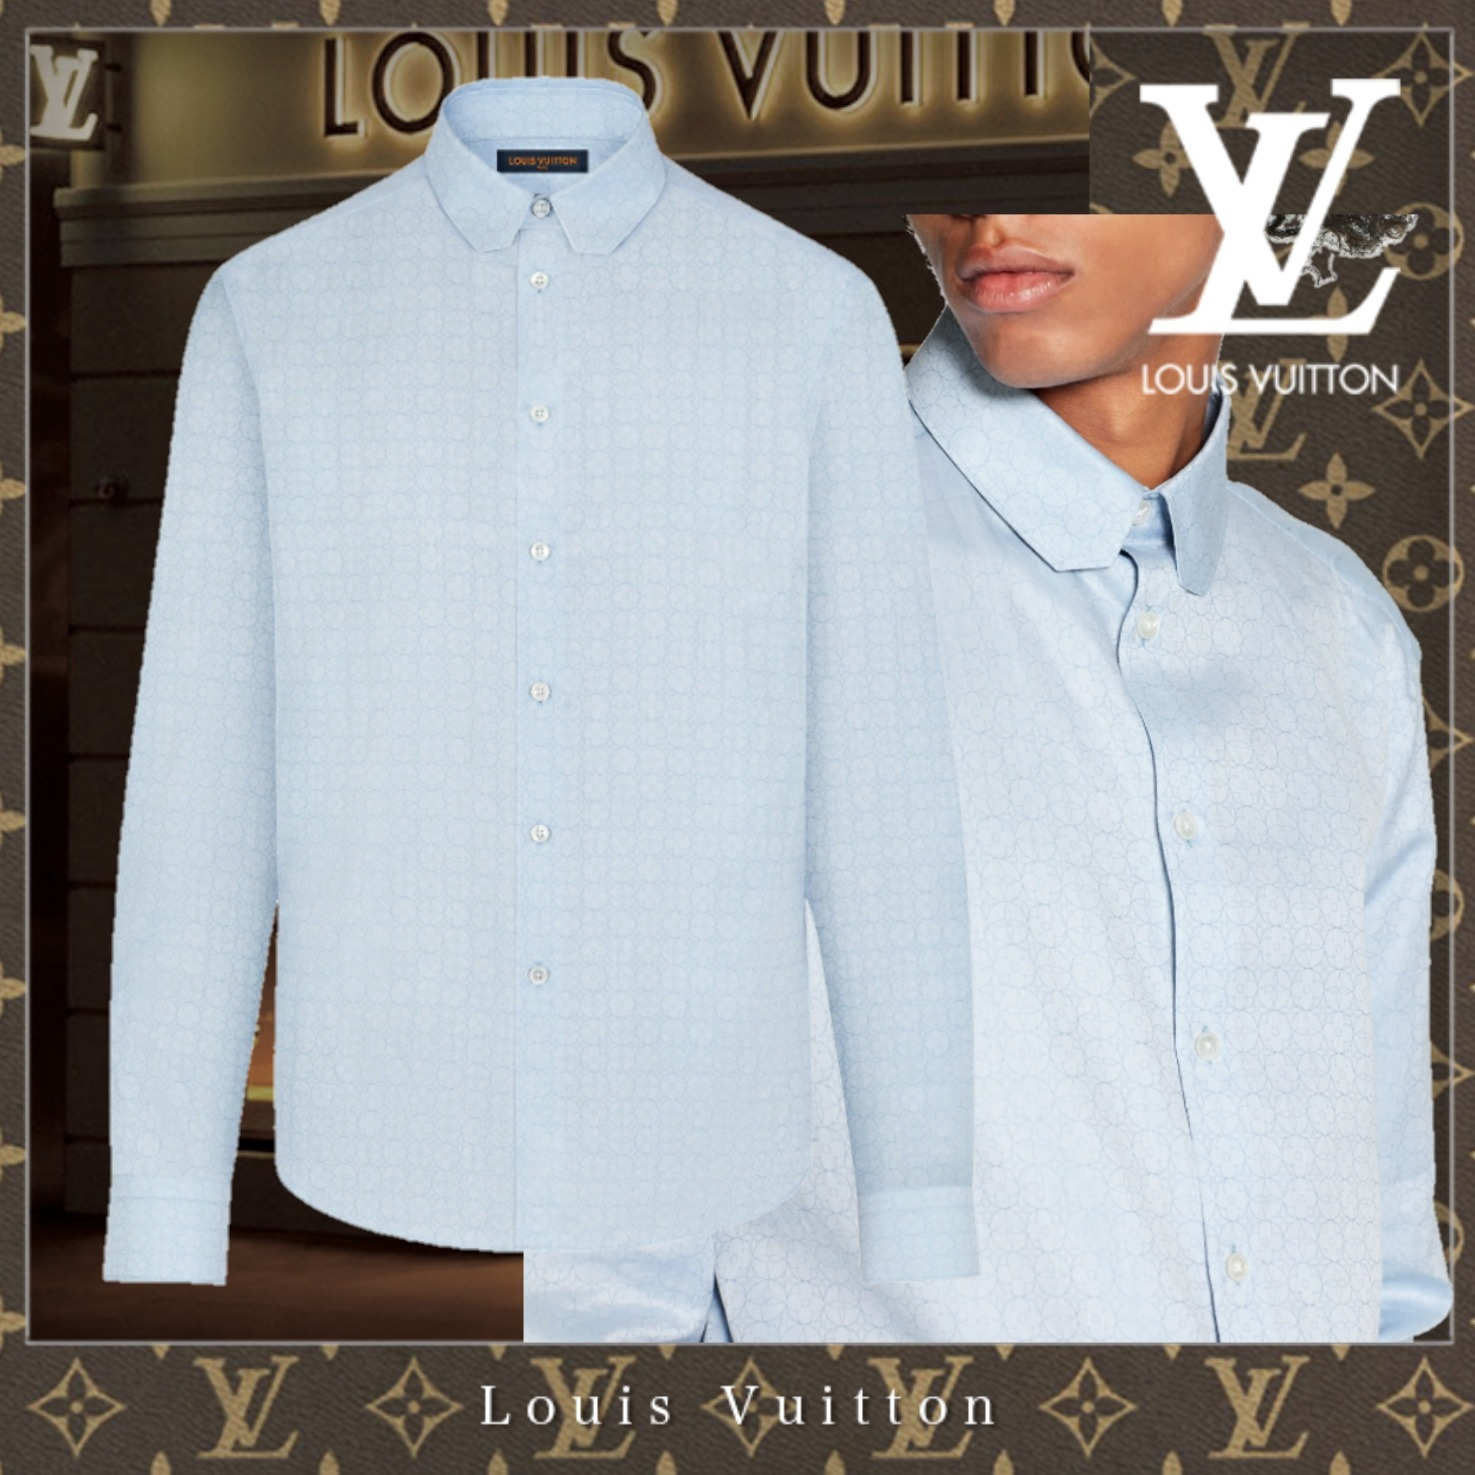 21SS【直営買付】Louis Vuitton ロングスリーブDNAシャツ☆新作 (Louis Vuitton/シャツ) 1A8HLQ  1A8HLR  1A8HLS